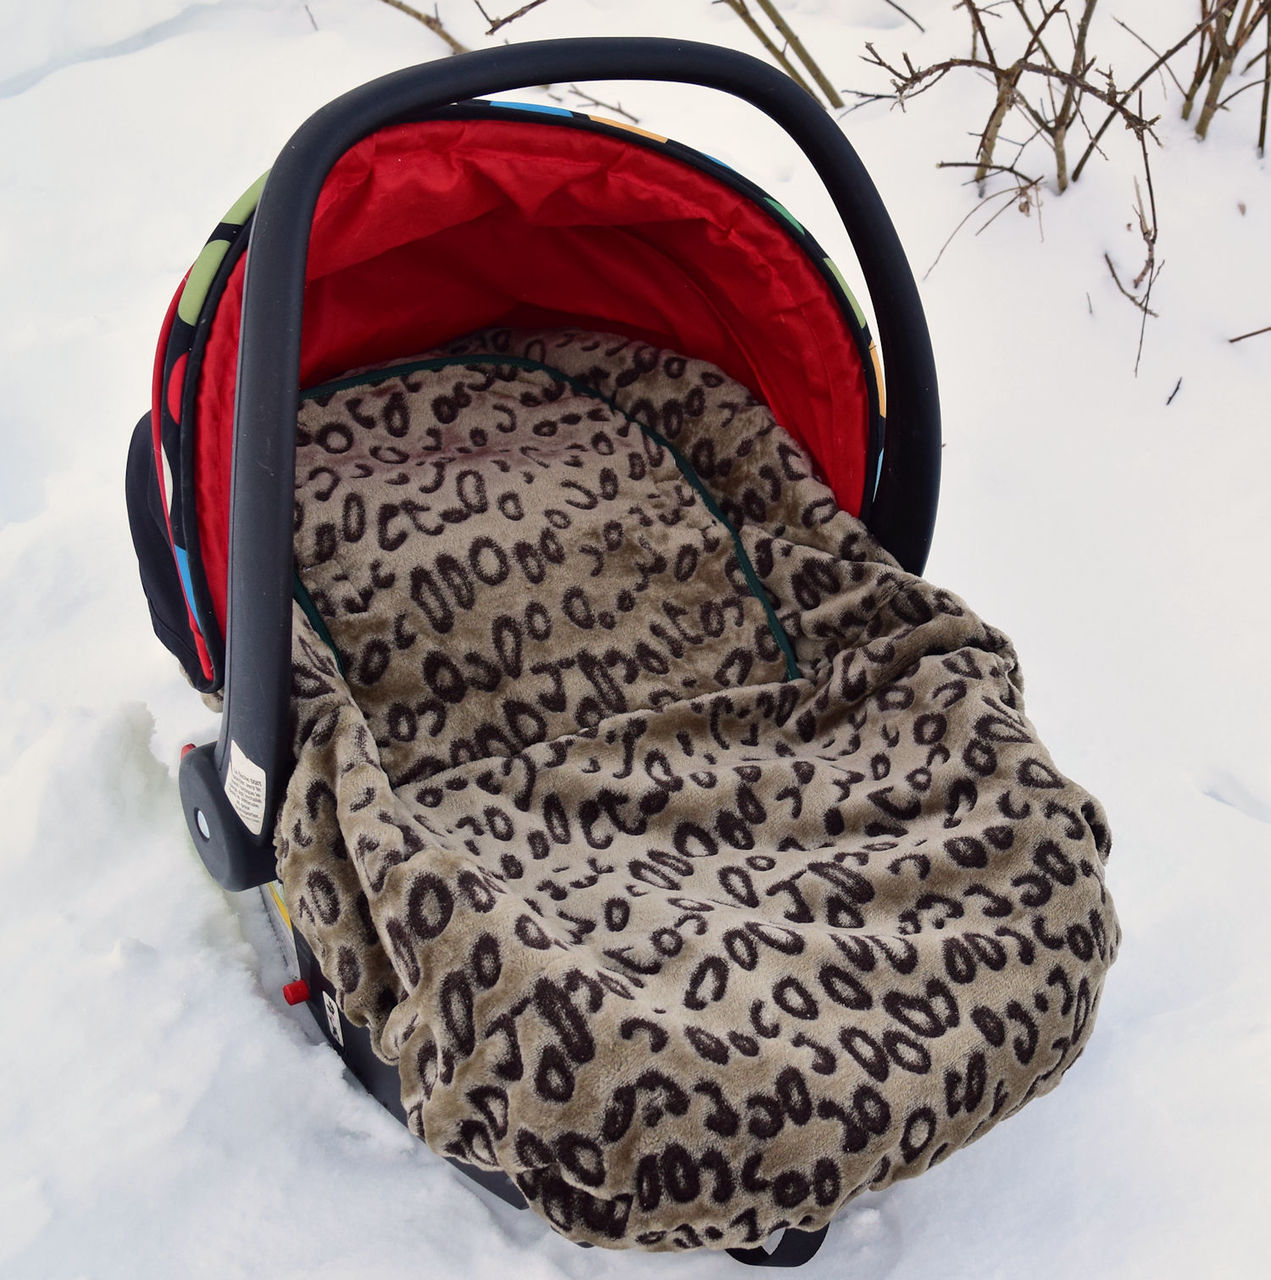 Excellent Peek A Boo Infant Car Seat Cover Leopard Print Andrewgaddart Wooden Chair Designs For Living Room Andrewgaddartcom